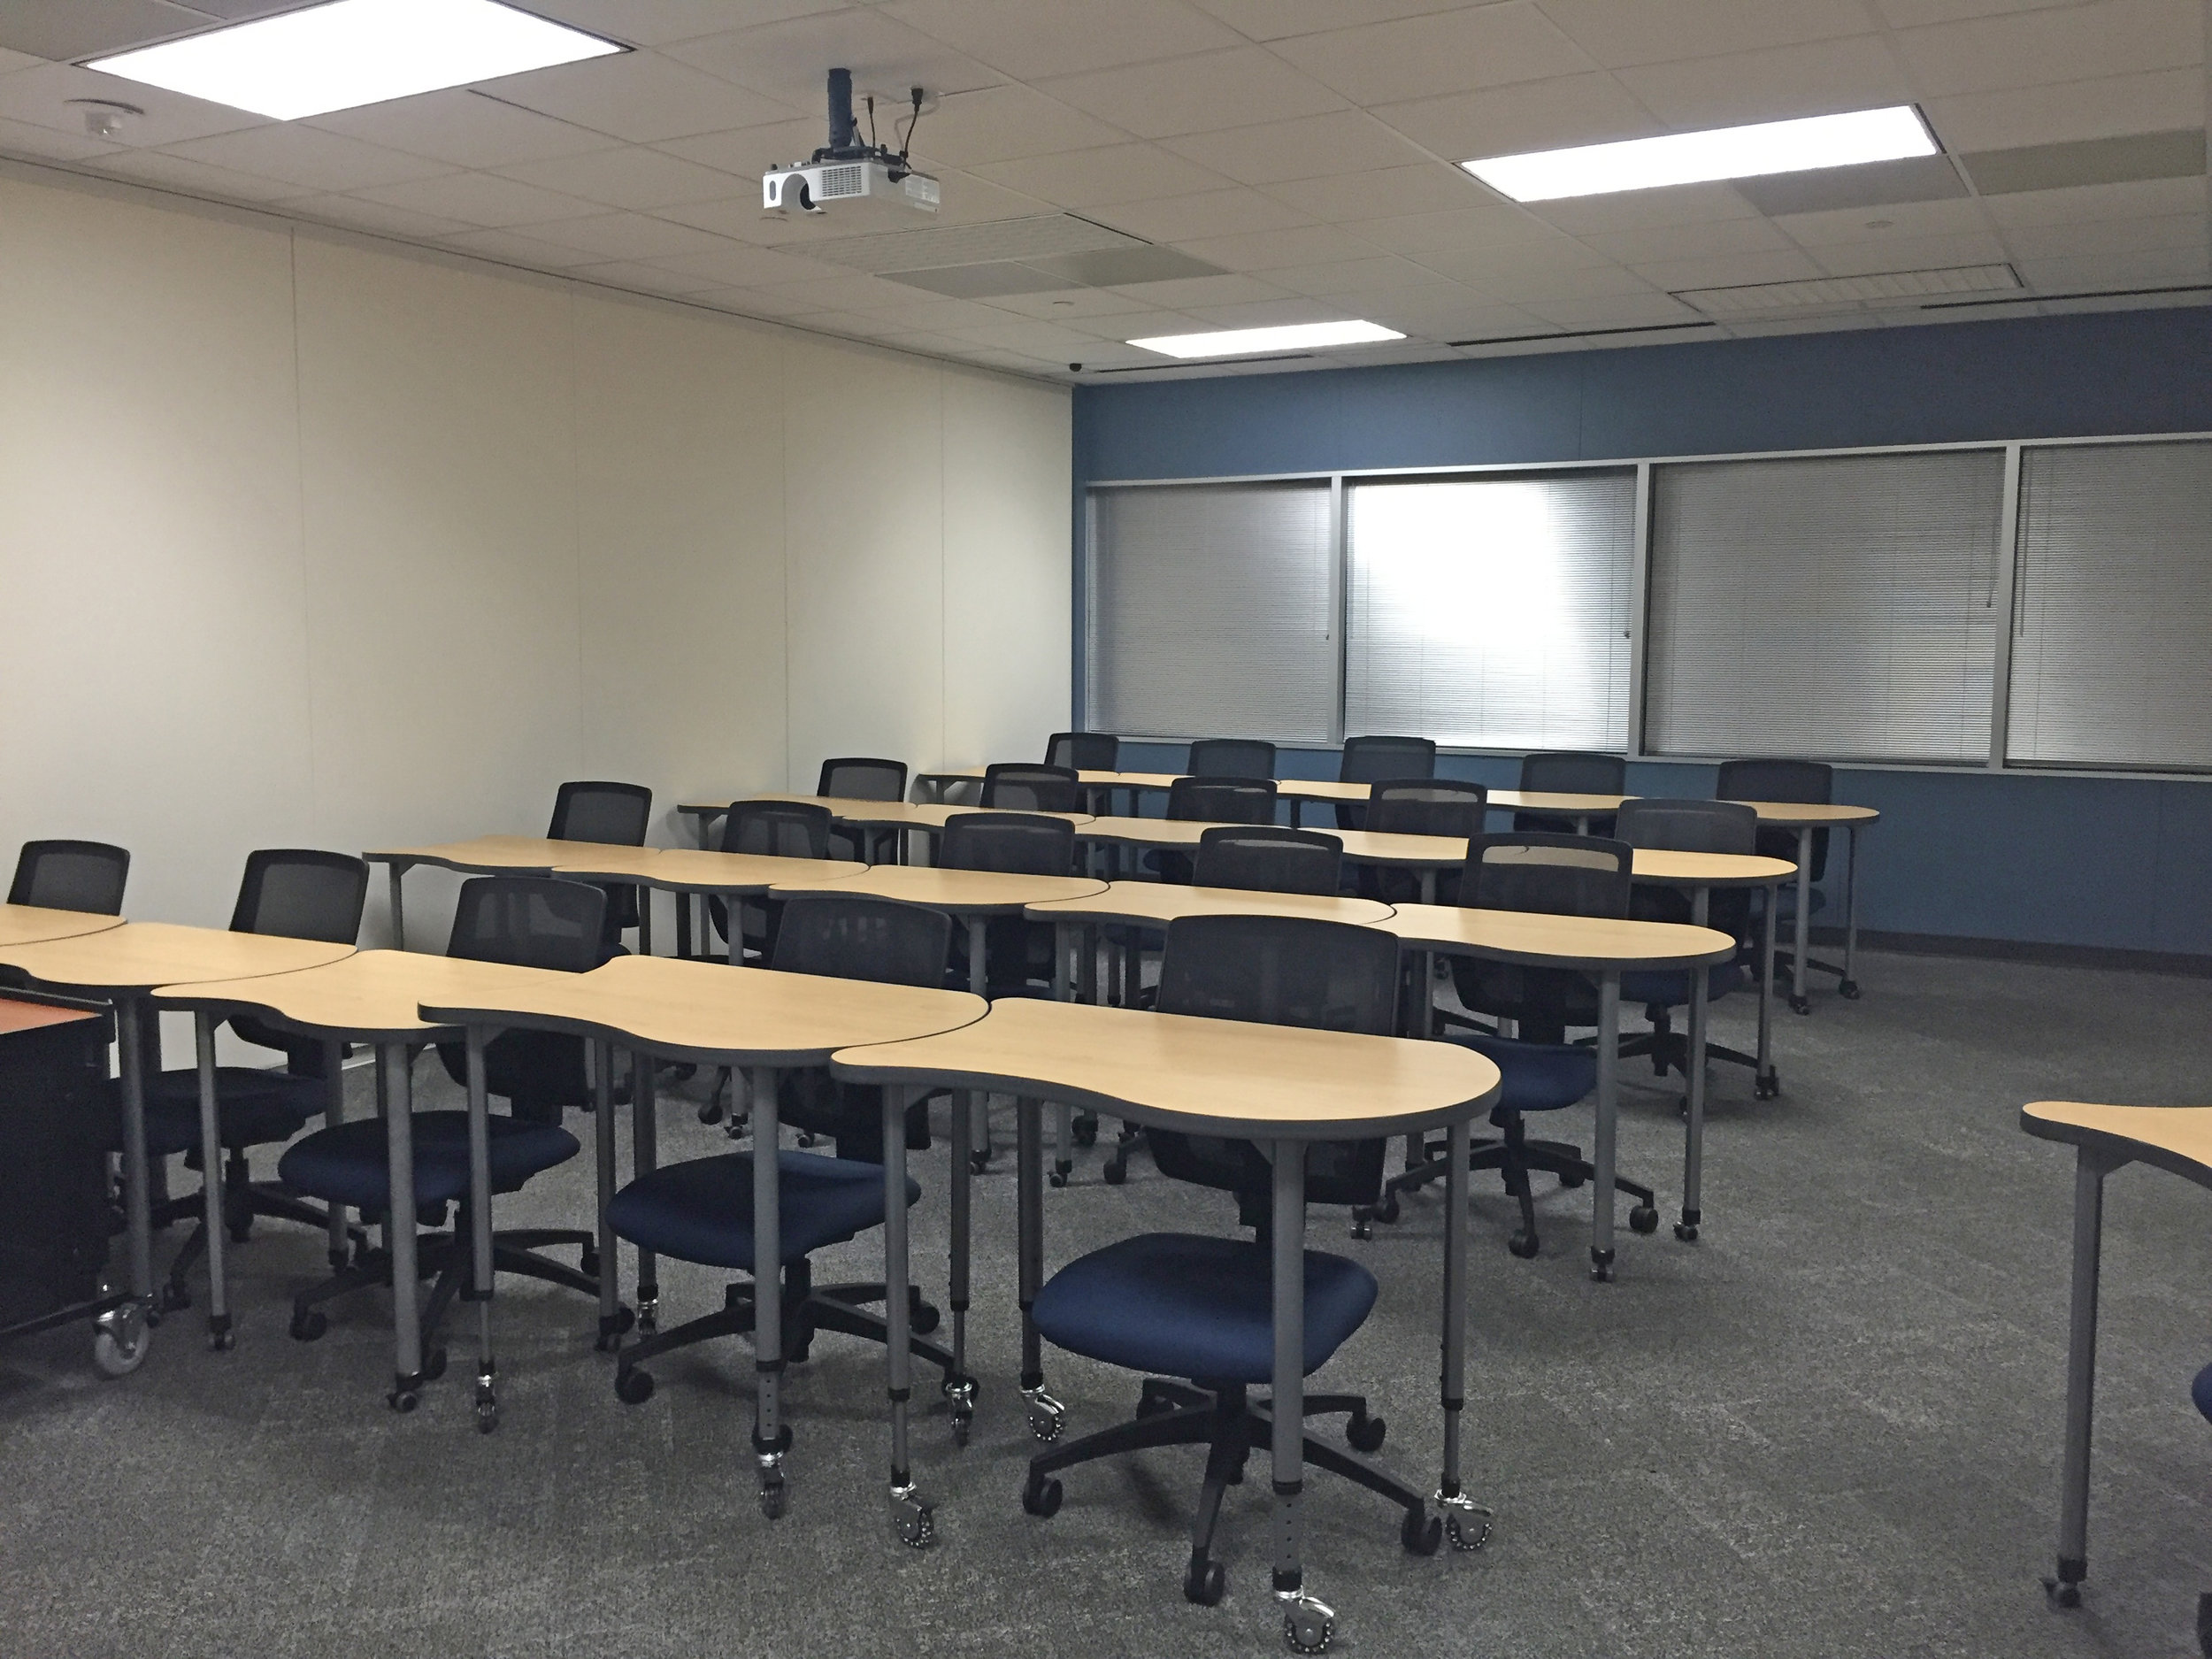 UH Solves Classroom Design Challenge with a Unique Table Solution